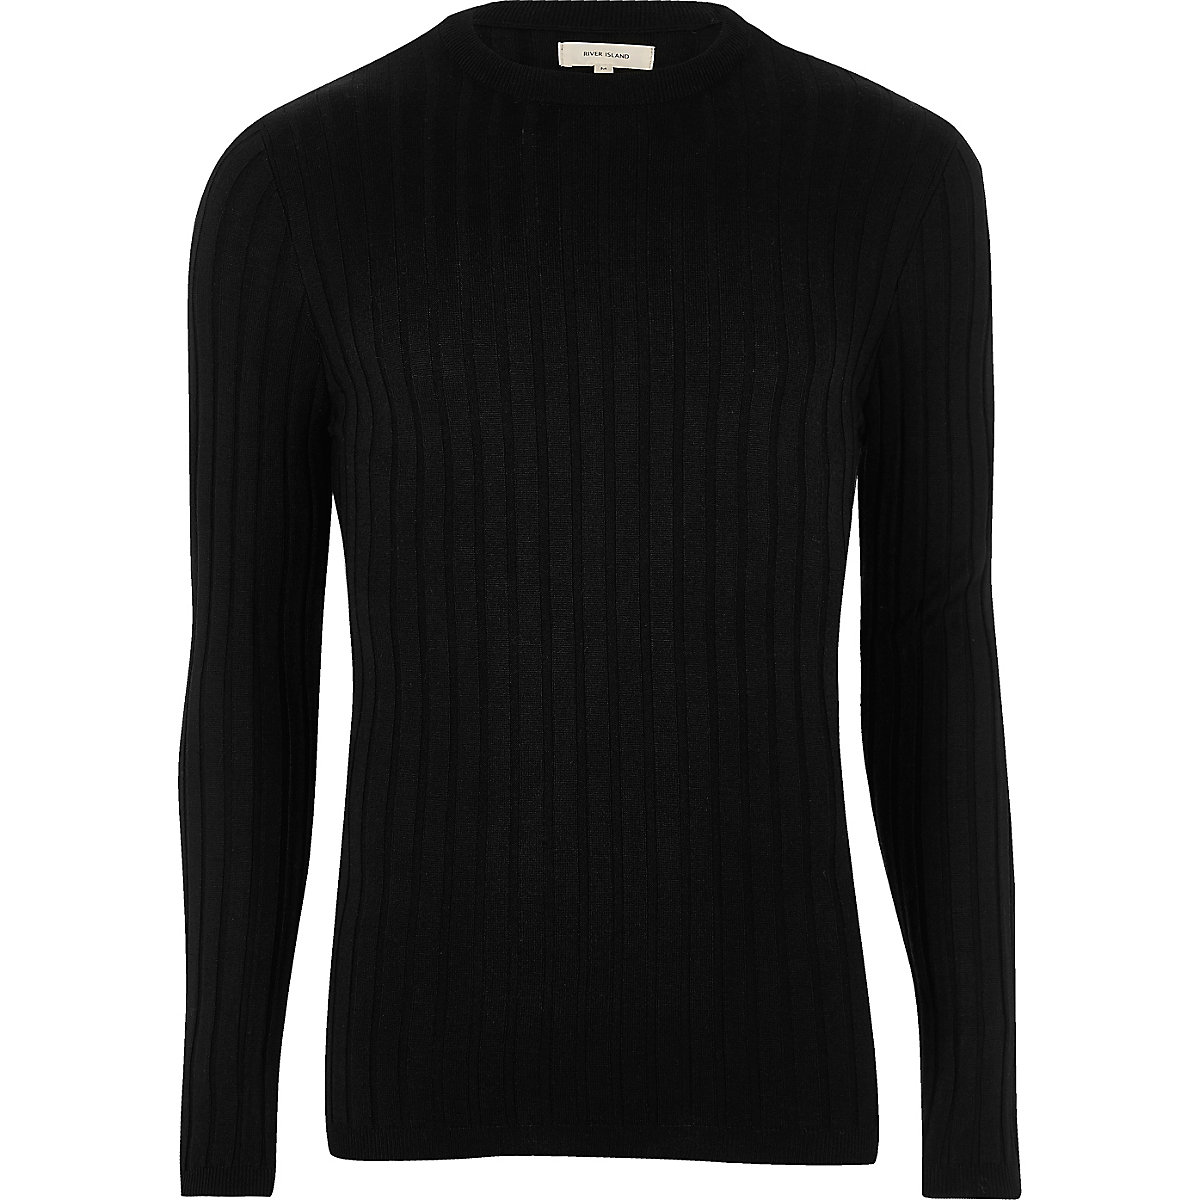 Black ribbed muscle fit jumper